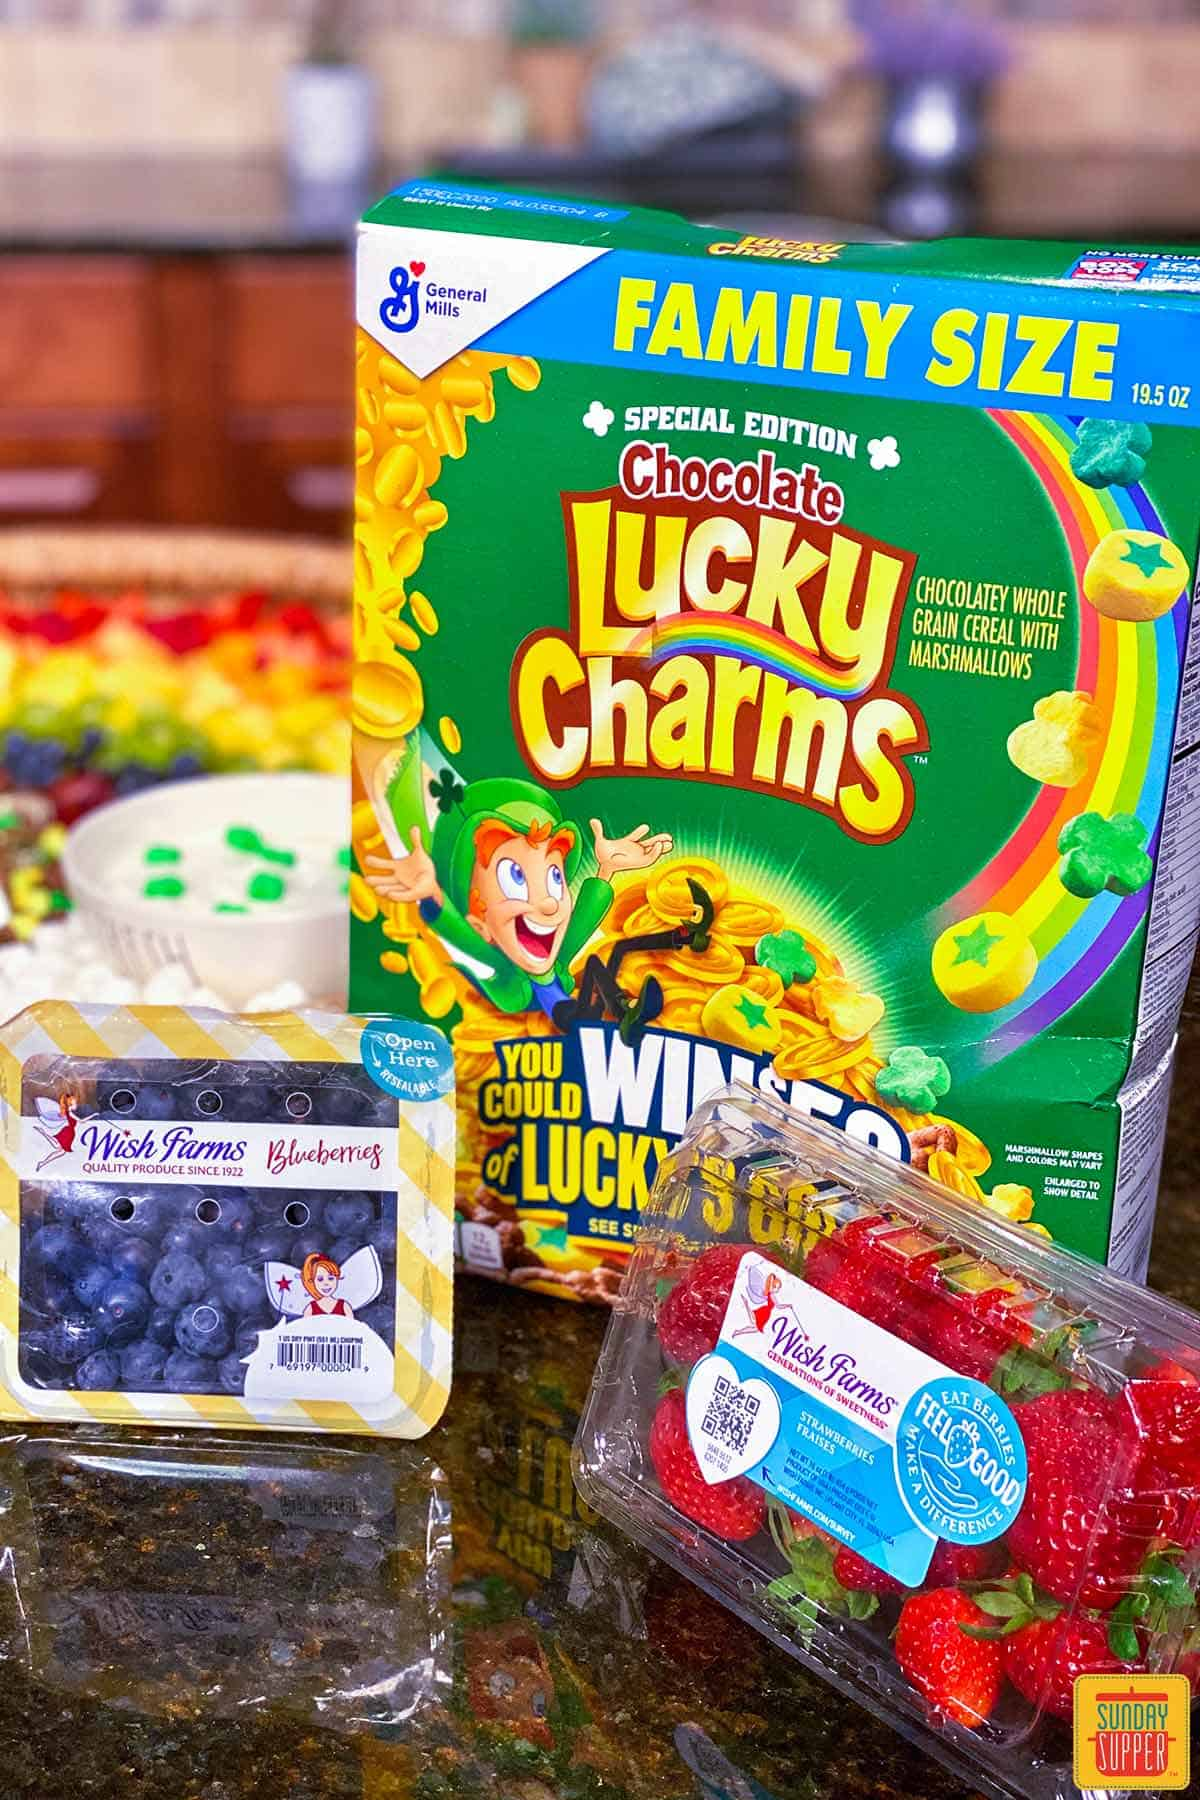 Lucky charms and fresh berries for fruit and yogurt parfait bar